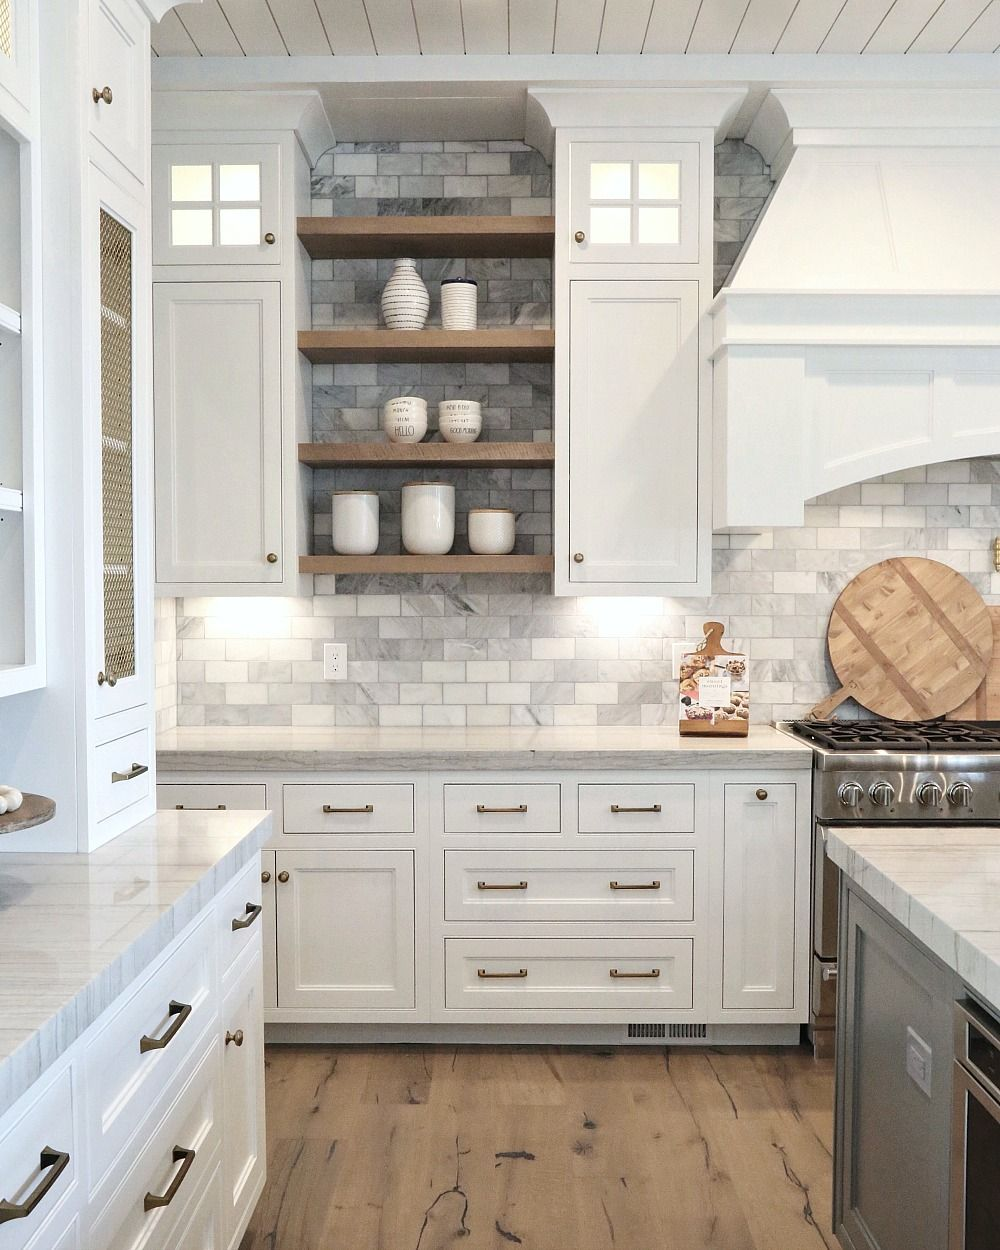 Painted Kitchen Cabinets Mixed With Wood Stained Floating Shelves Cuisine Salle A Manger Cuisines Maison Renovation Cuisine